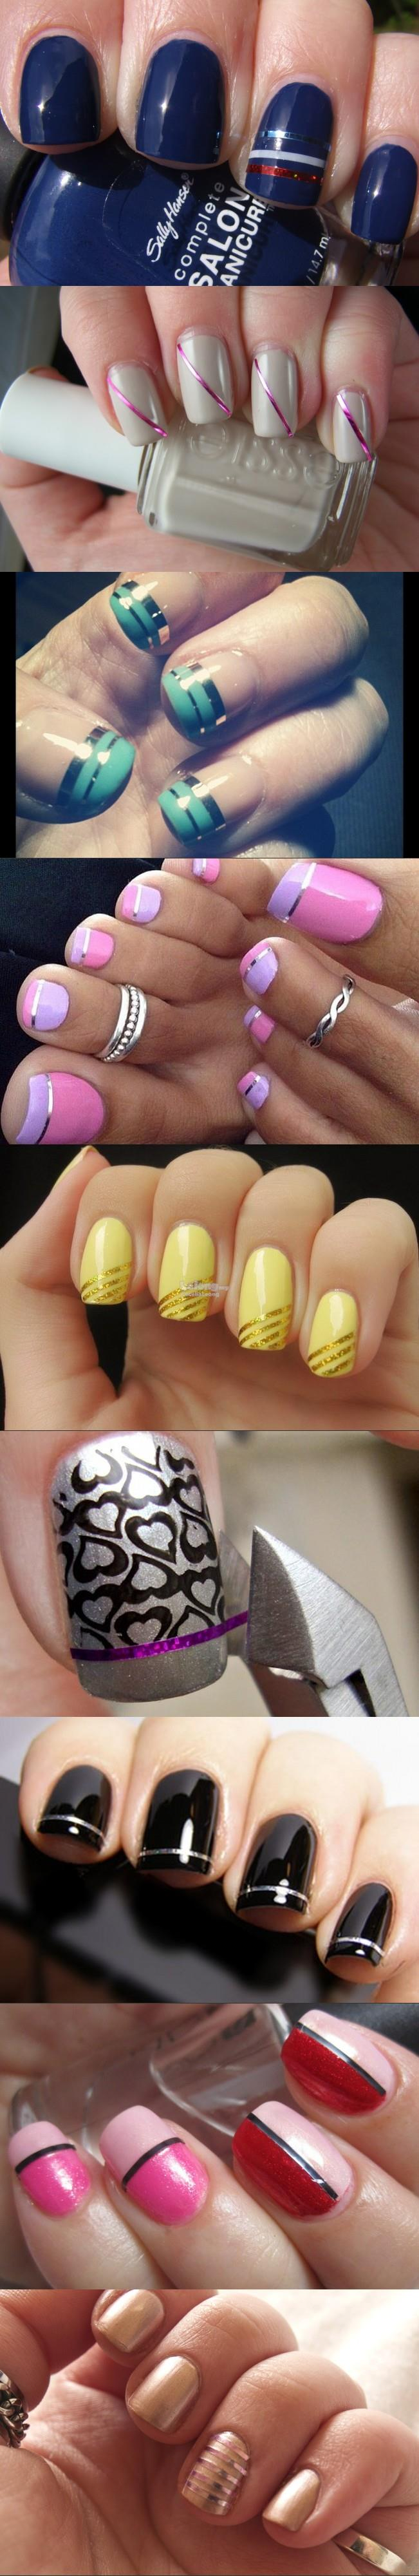 30pcs Nail Art Colour Striping Tape Decoration Accessory Silver Gold